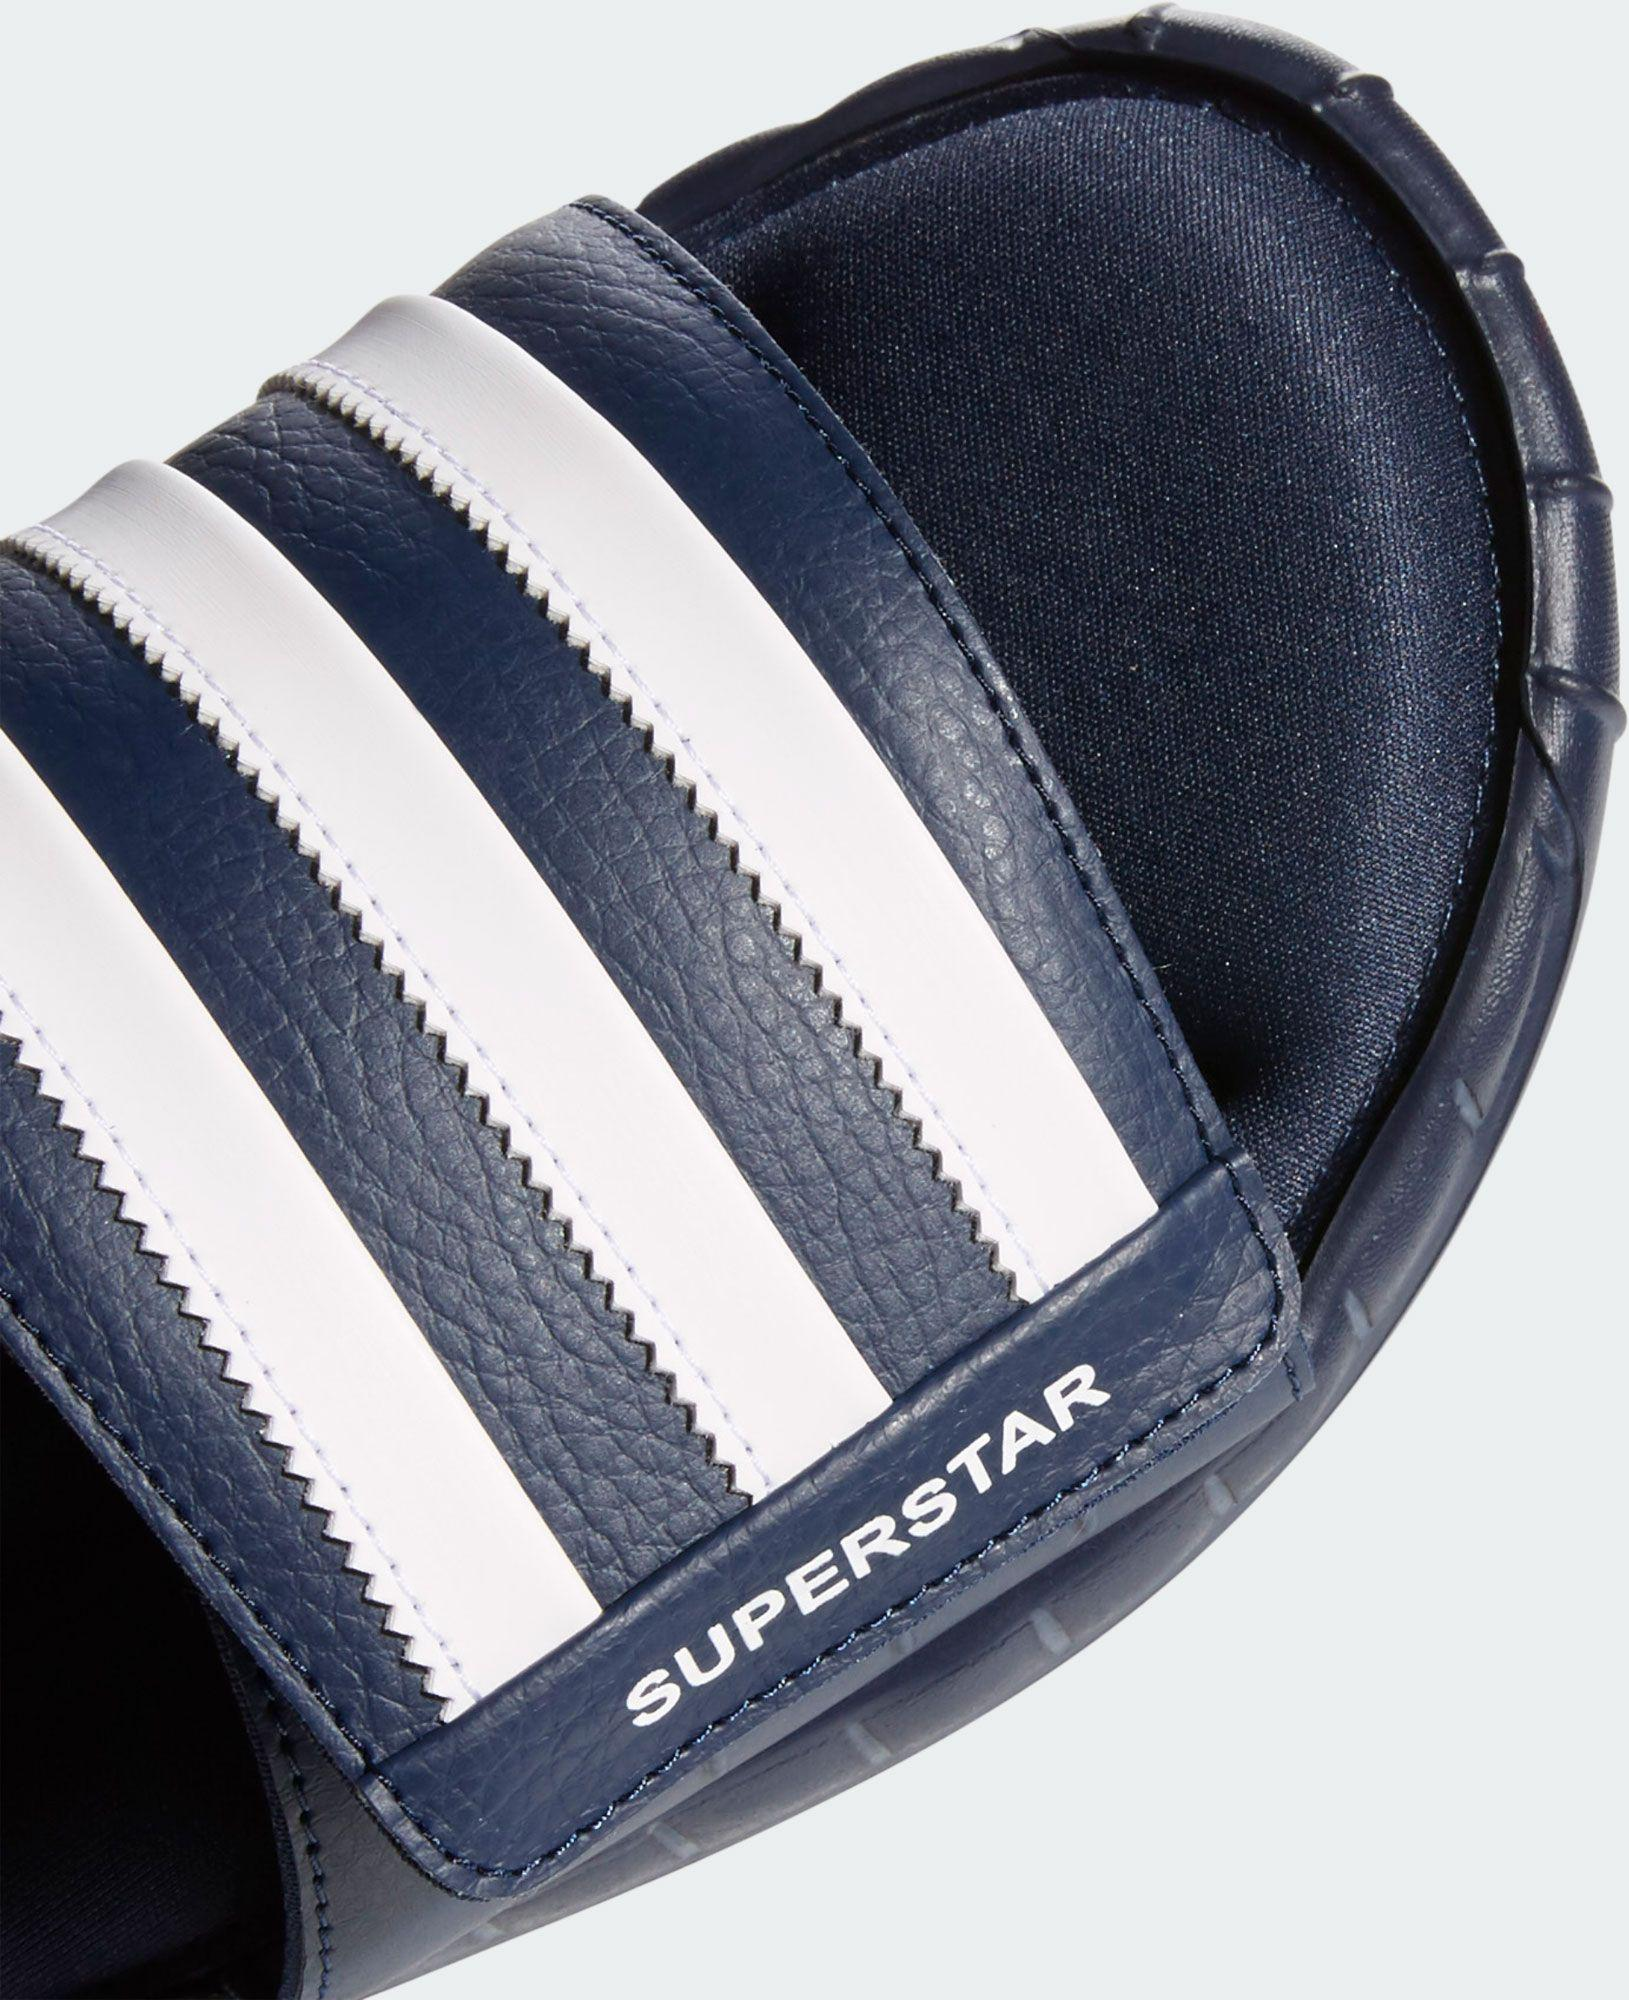 aa183c931a39 Lyst - adidas Superstar 3g Slides in Blue for Men